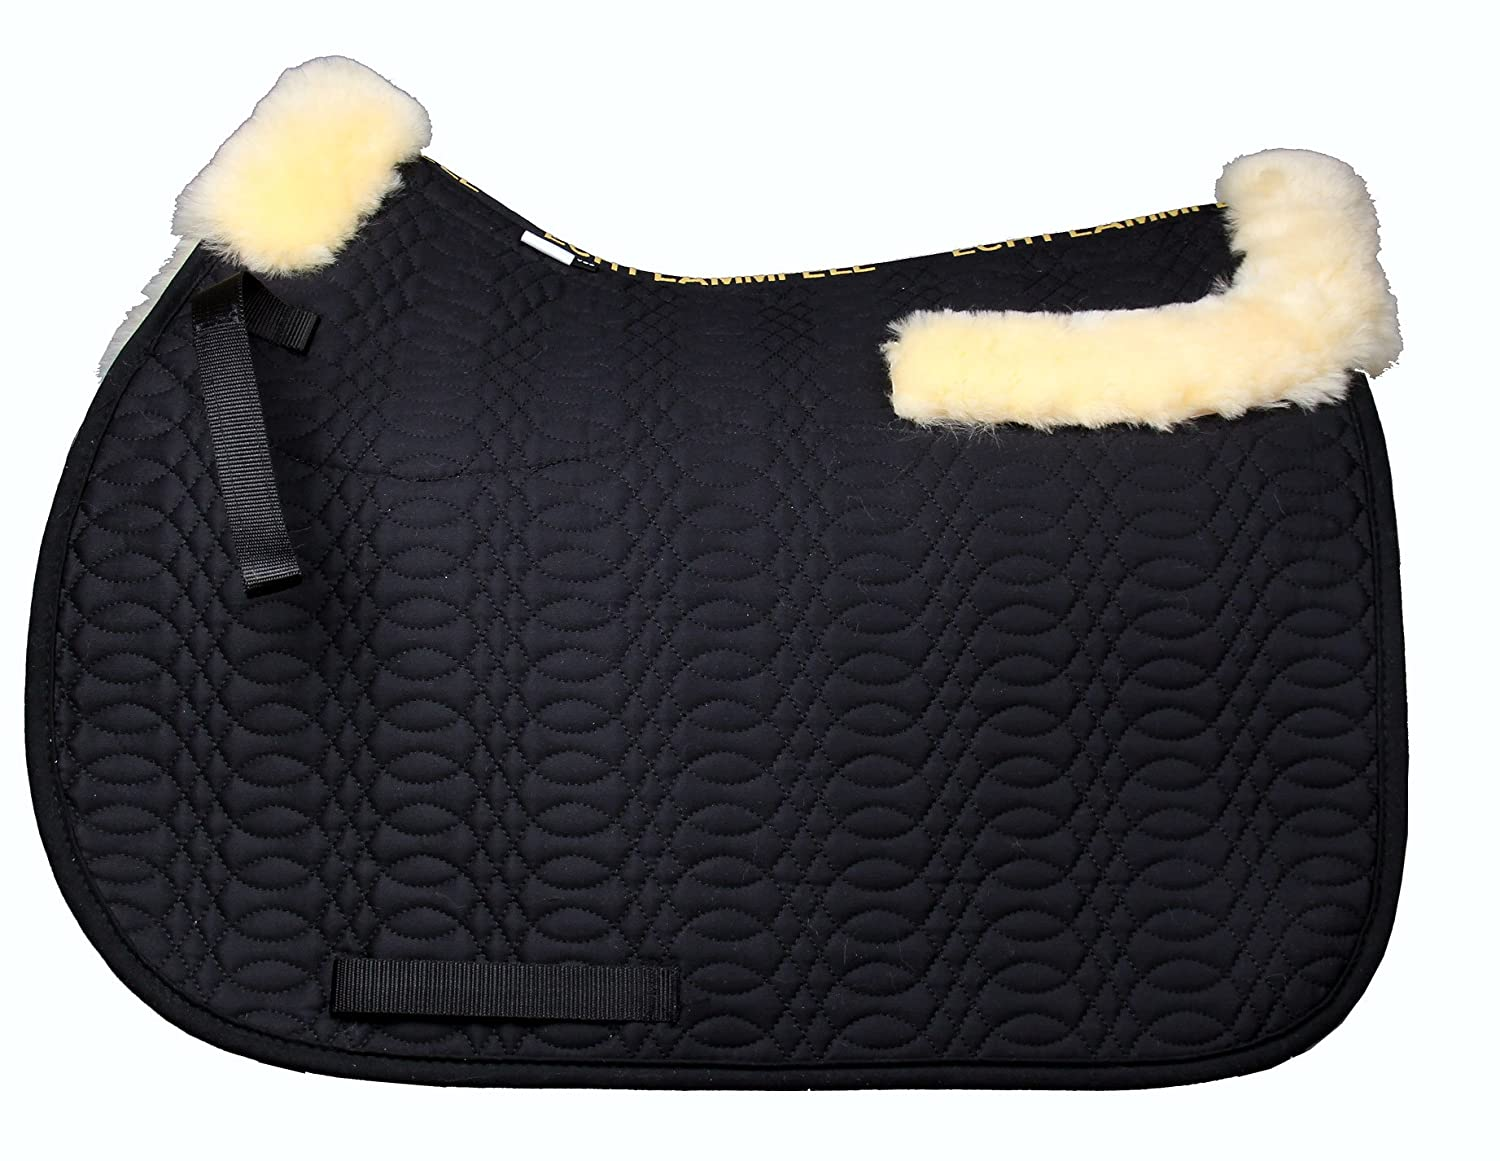 (VSS., Natural Wool+Black Quilting) - merauno Sheepskin GP Saddle Pad Full Blanket Dressage Jumping Numnah Saddlecloth & Square Saddle Pads Horse Riding Show General Purpose Pad   B078W3NWVF